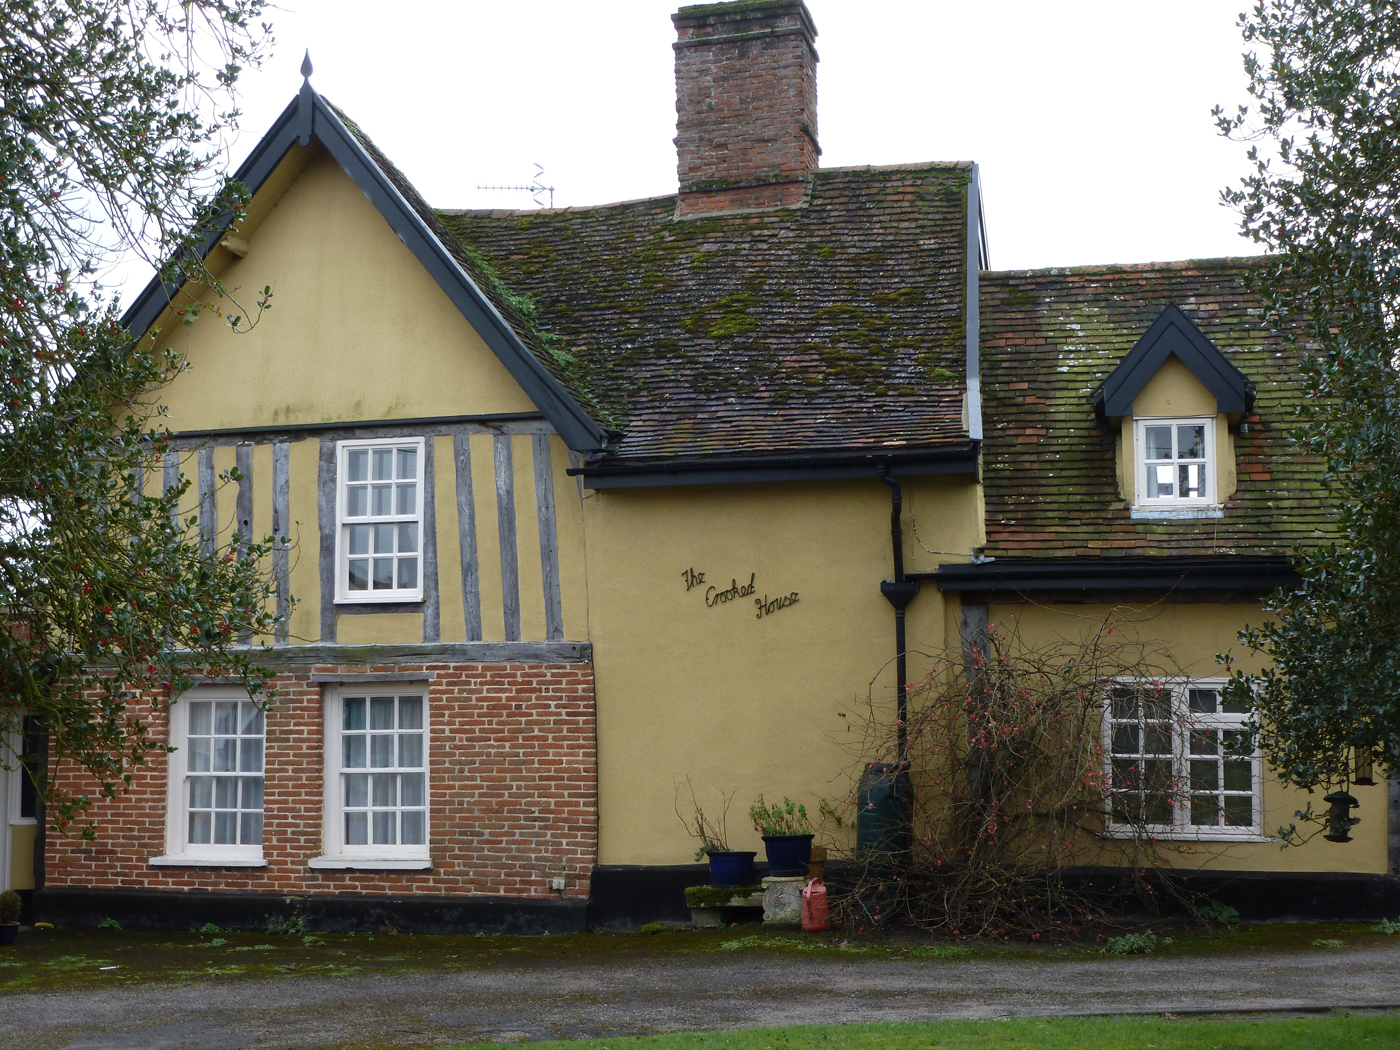 Crooked House,High St,Spring Ln